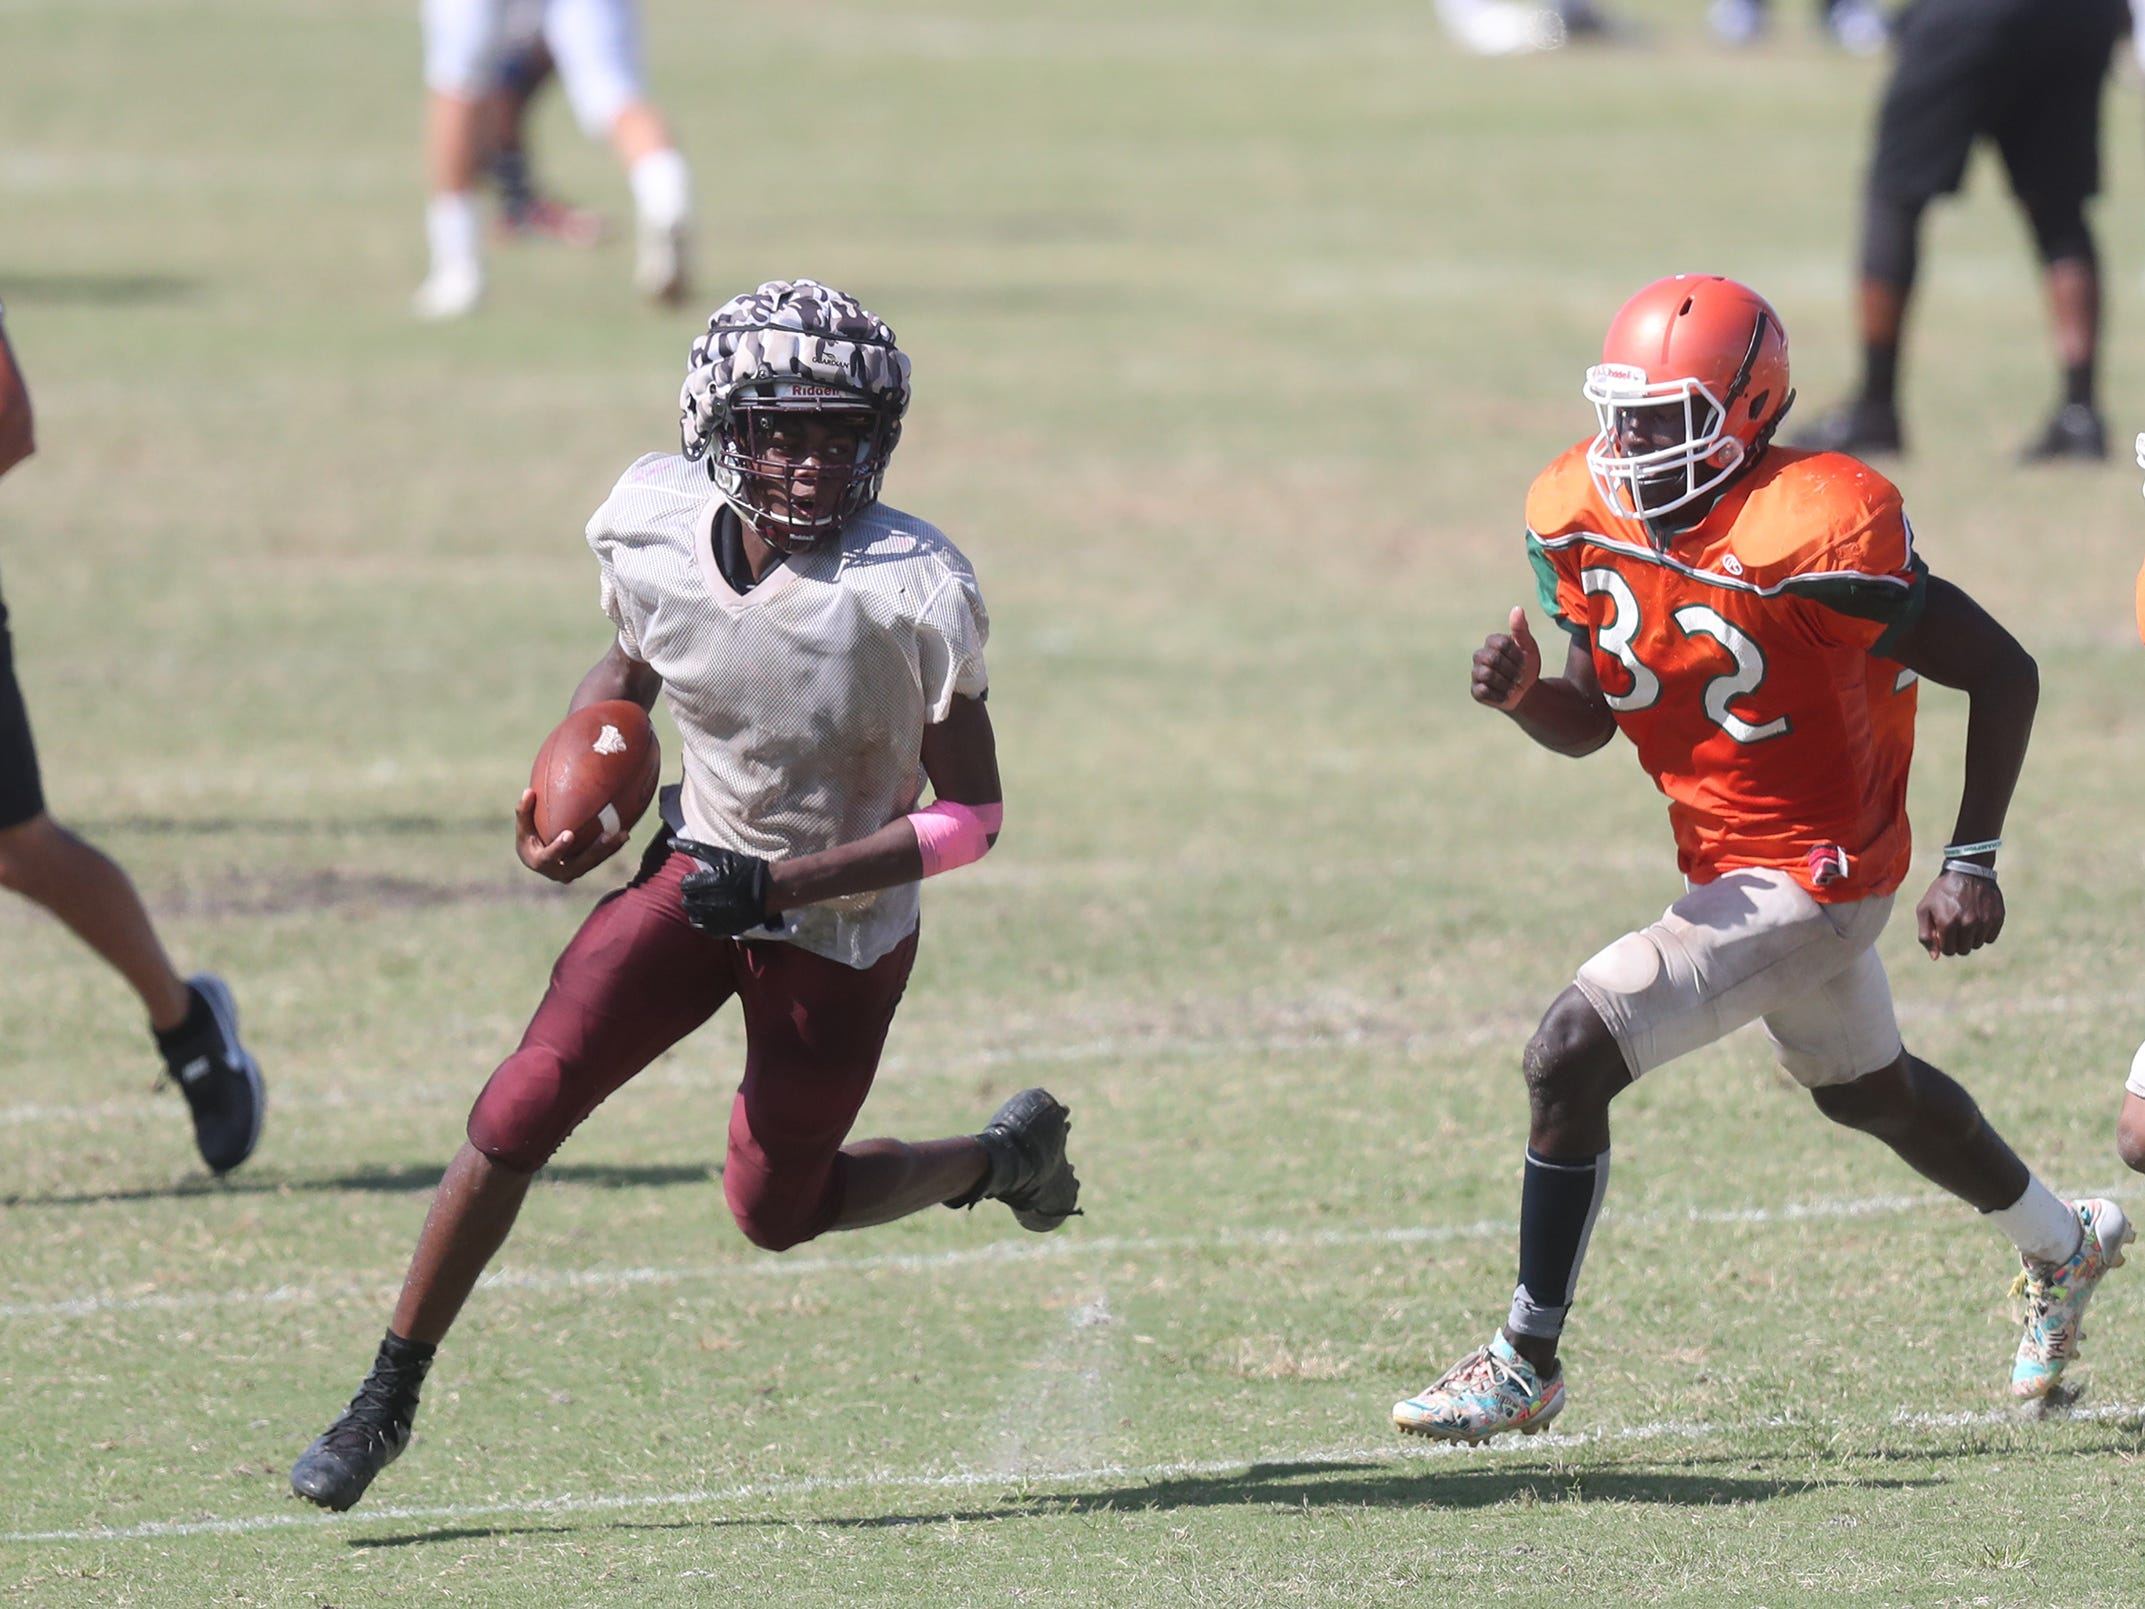 Riverdale High School joined North Fort Myers, Dunbar and Venice in a joint scrimmage on Saturday at North Fort Myers High School.